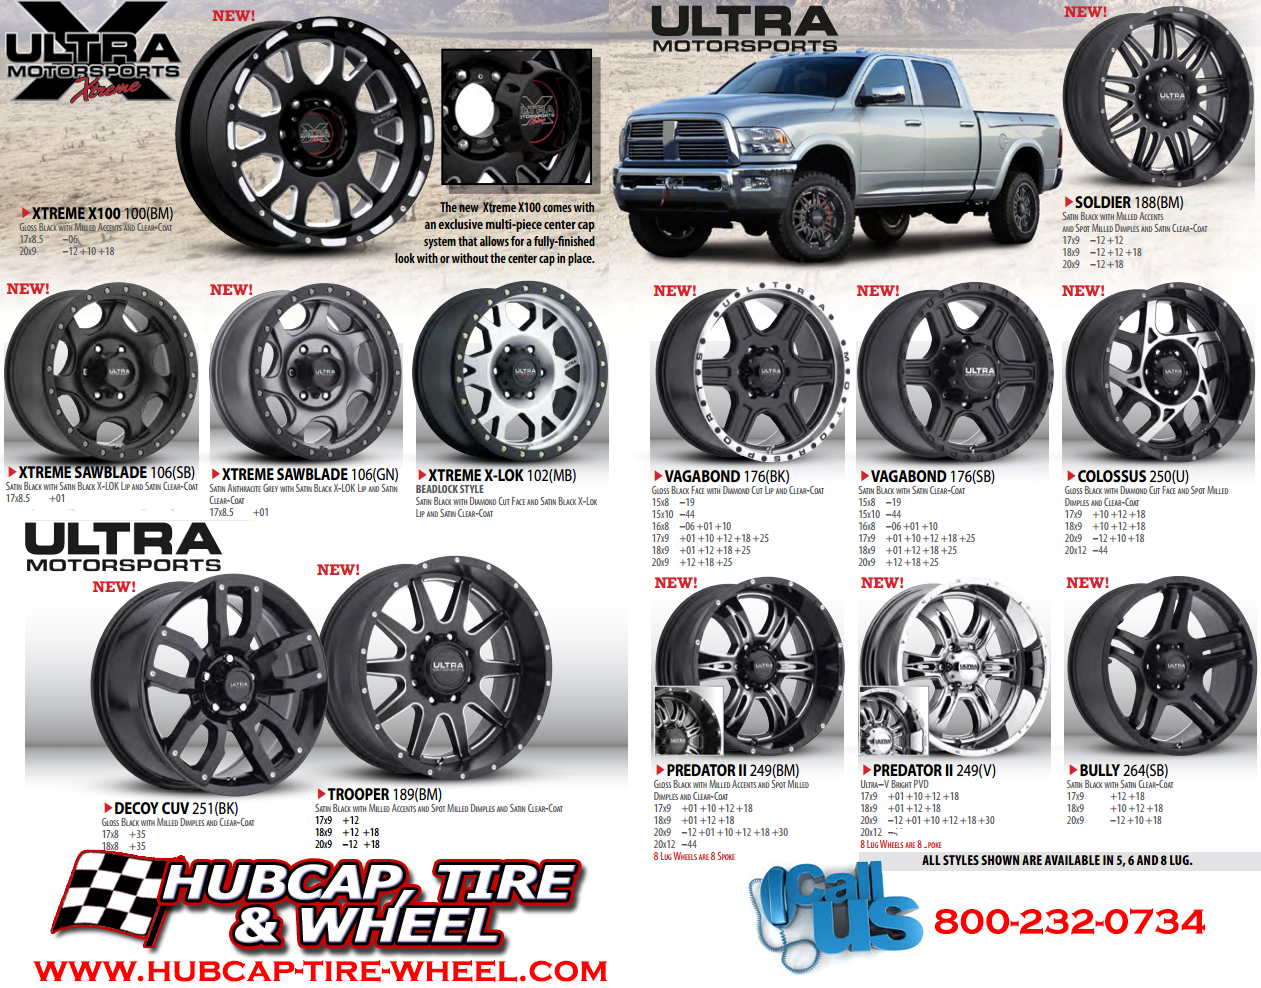 New 2015 Ultra Motorsports Wheels Including Ultra Xtreme